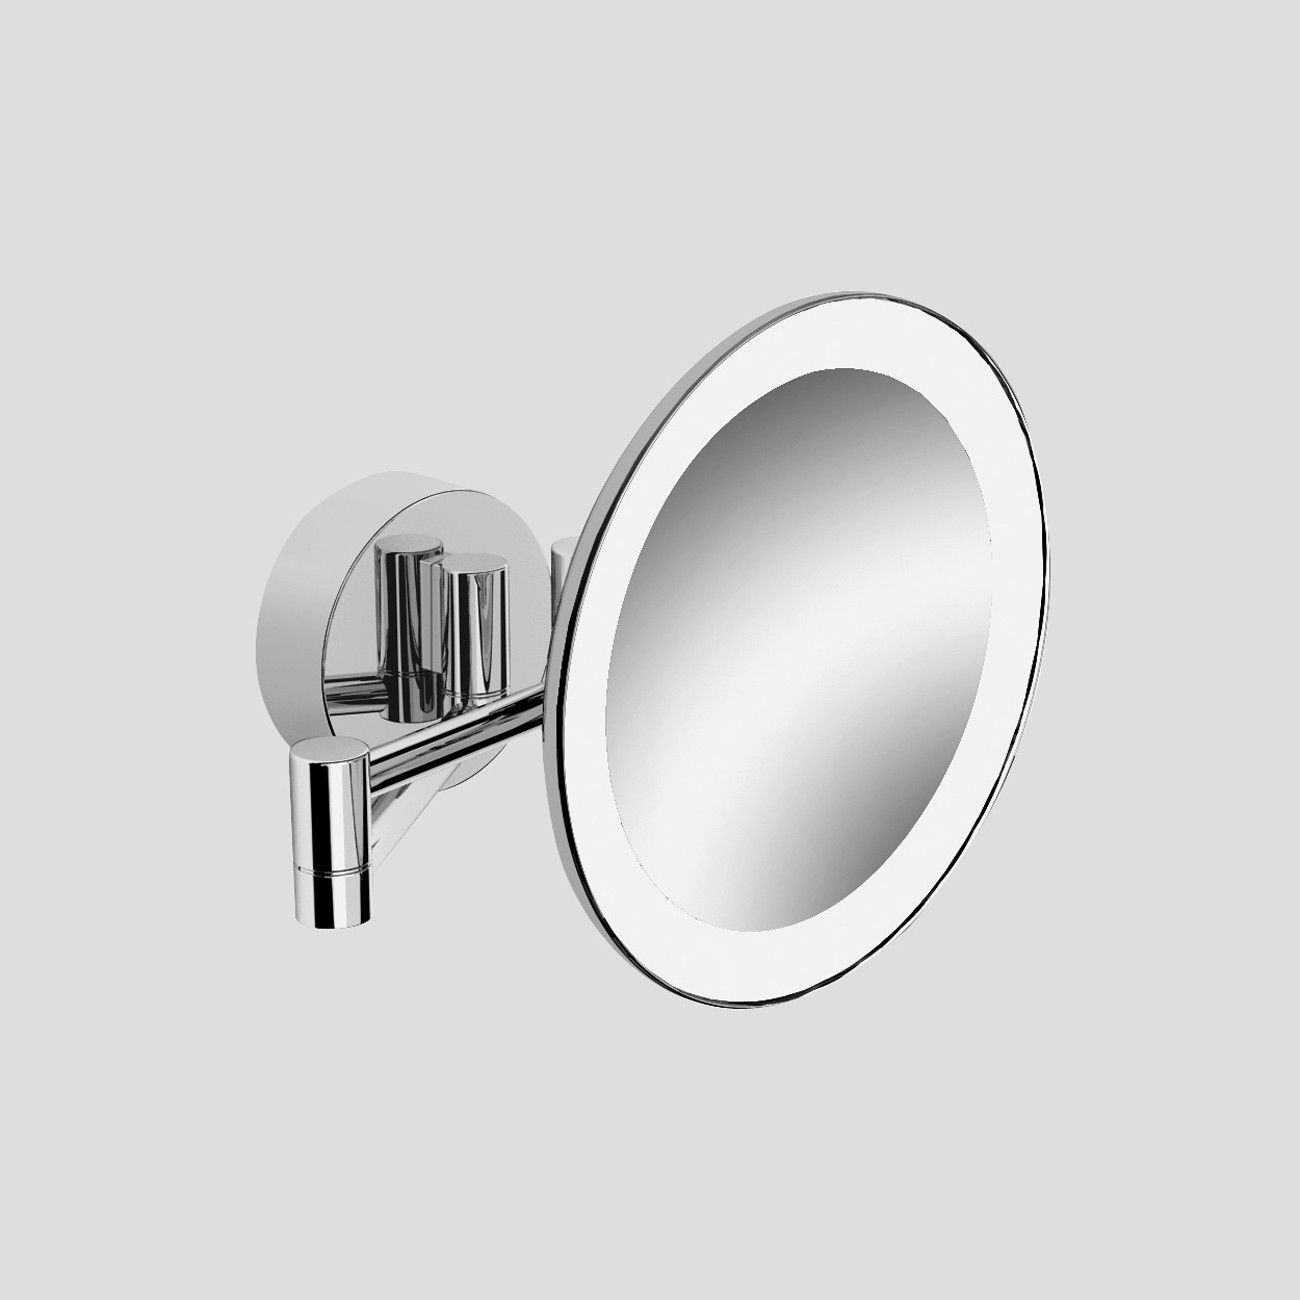 Wall Mounted Led Magnifying Mirror | http://drrw.us | Pinterest ...